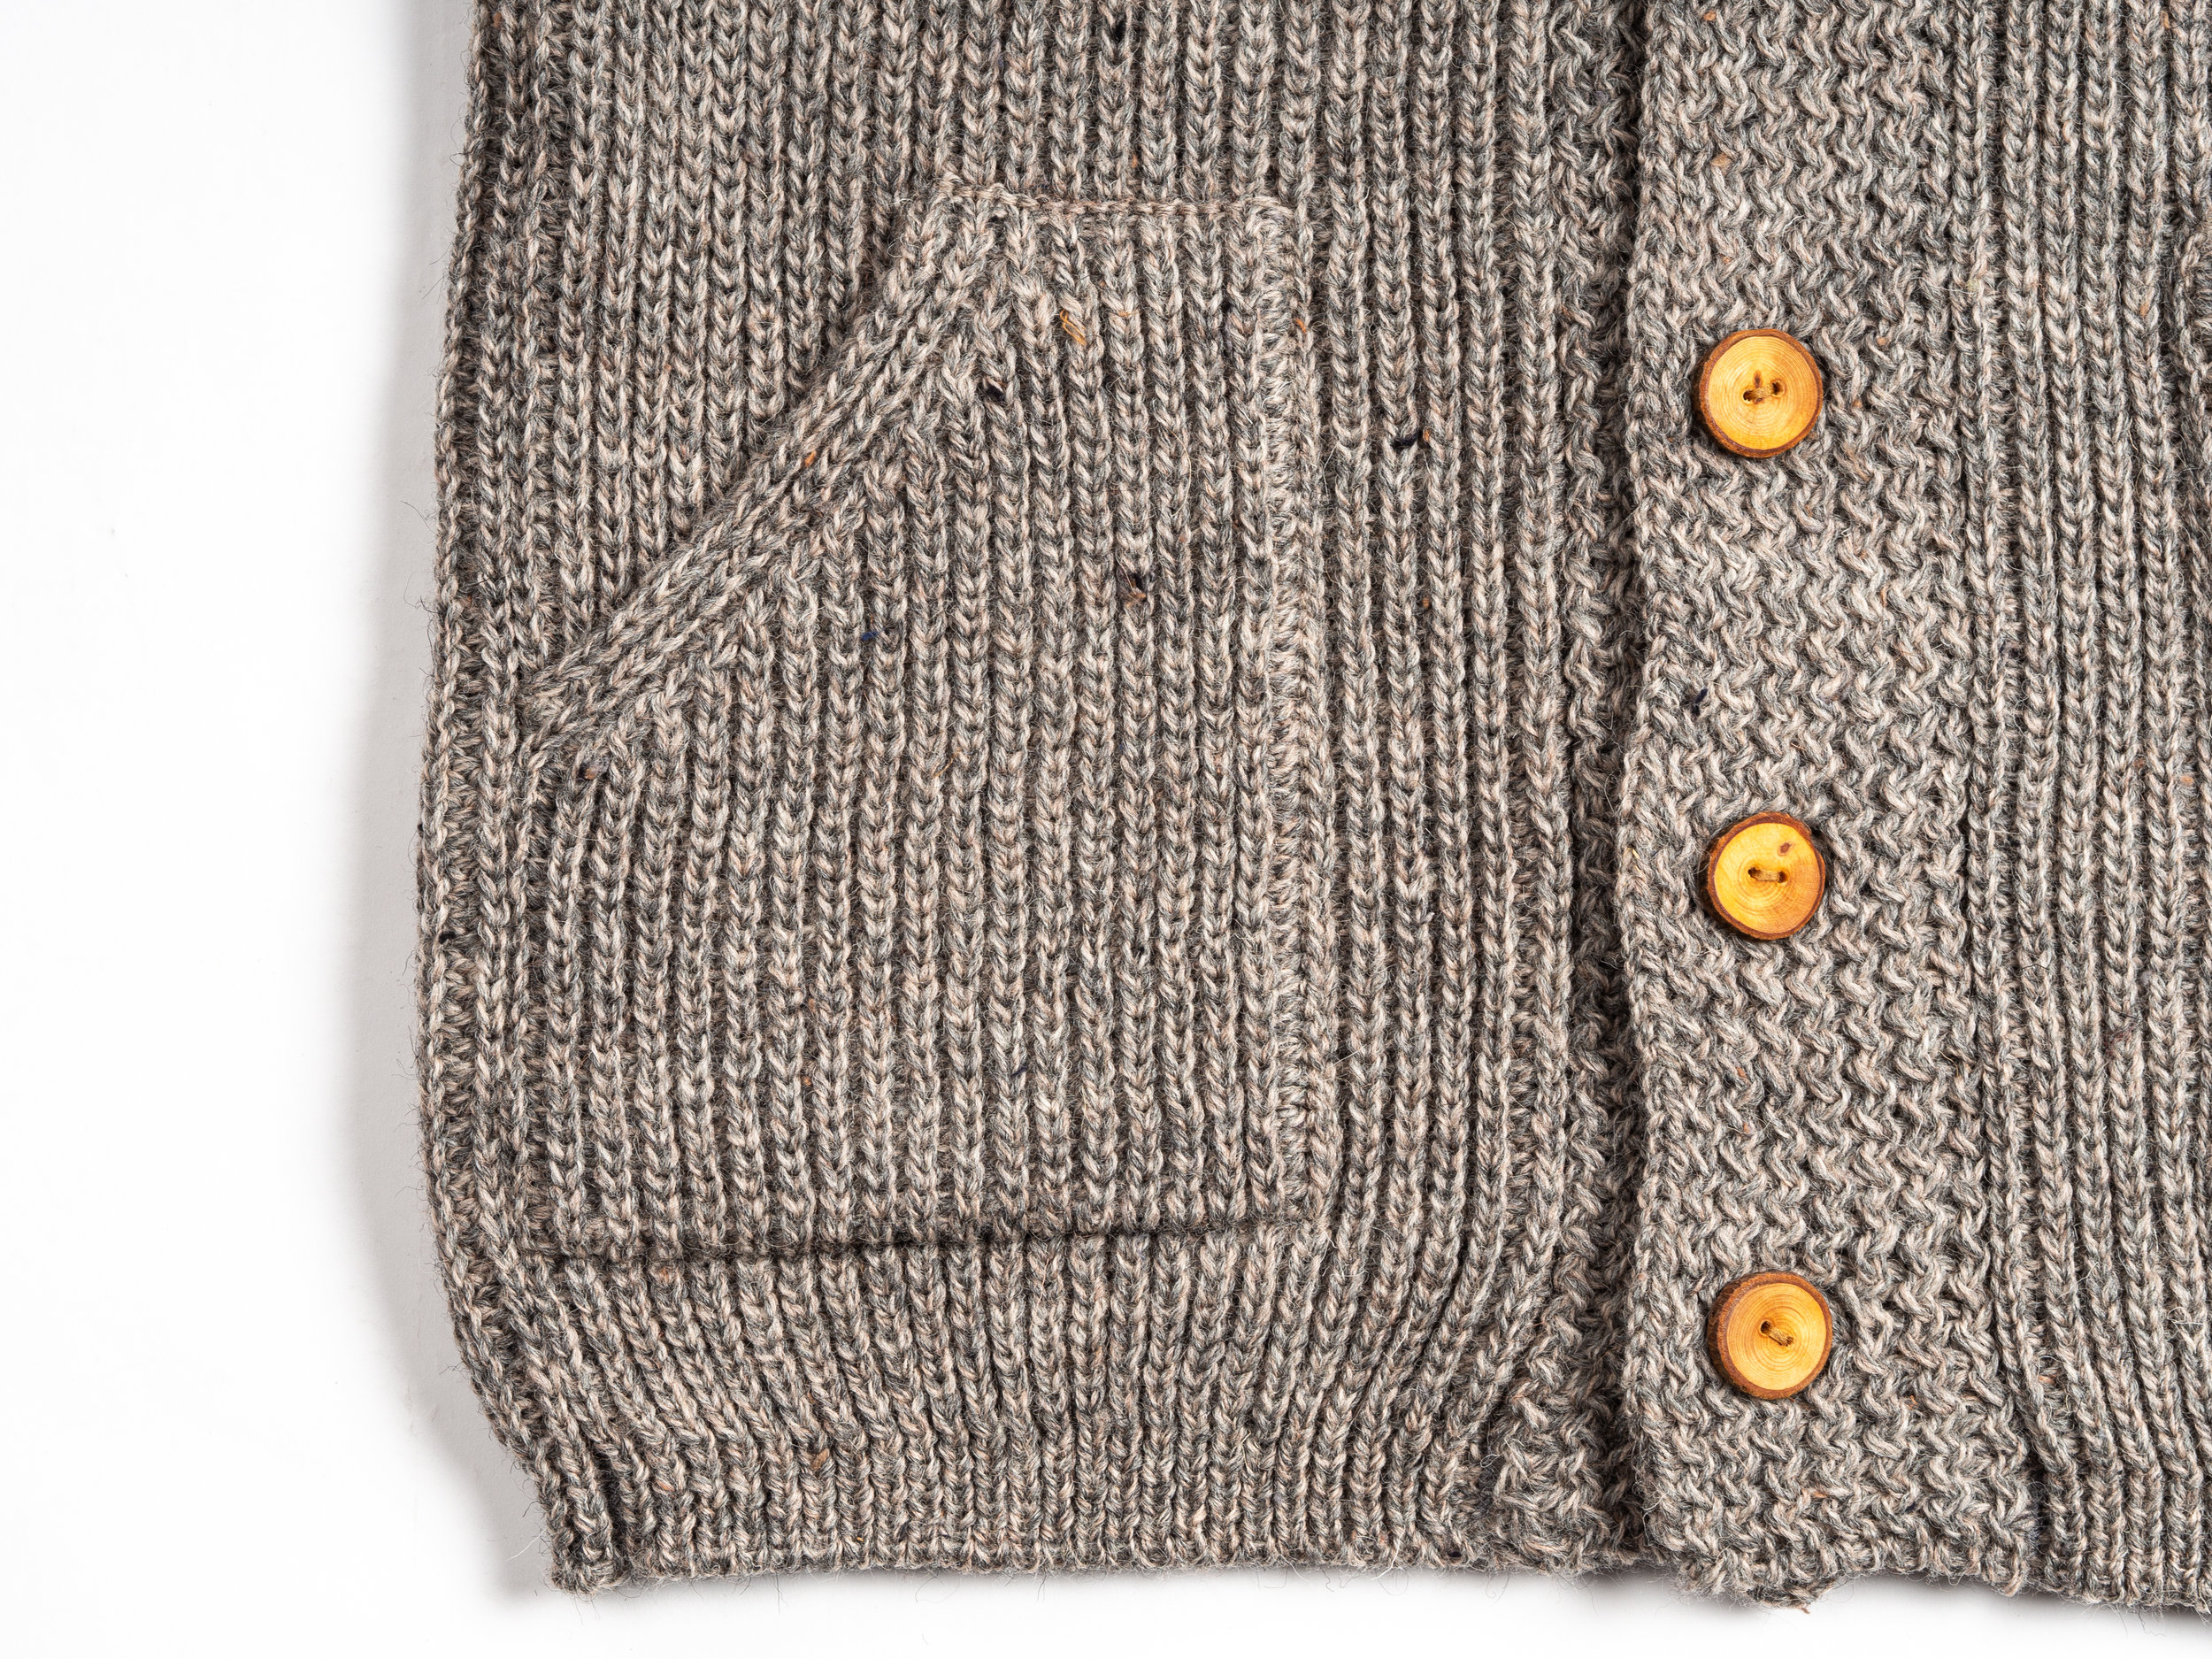 18 Waits Wool Cardigans - The first delivery from 18 Waits includes two rustic hand knit wool cardigans. These sweaters are classic Canadiana, with a chunky knit wool body for warmth, raglan sleeves for an easy fit, hand sewn leather elbow patches for durability, and real Douglas Fir buttons for interest. The cardigans come with two patch hand pockets, and a shawl collar for added coziness. These sweaters are knit in a small, independent mill on Prince Edward Island.